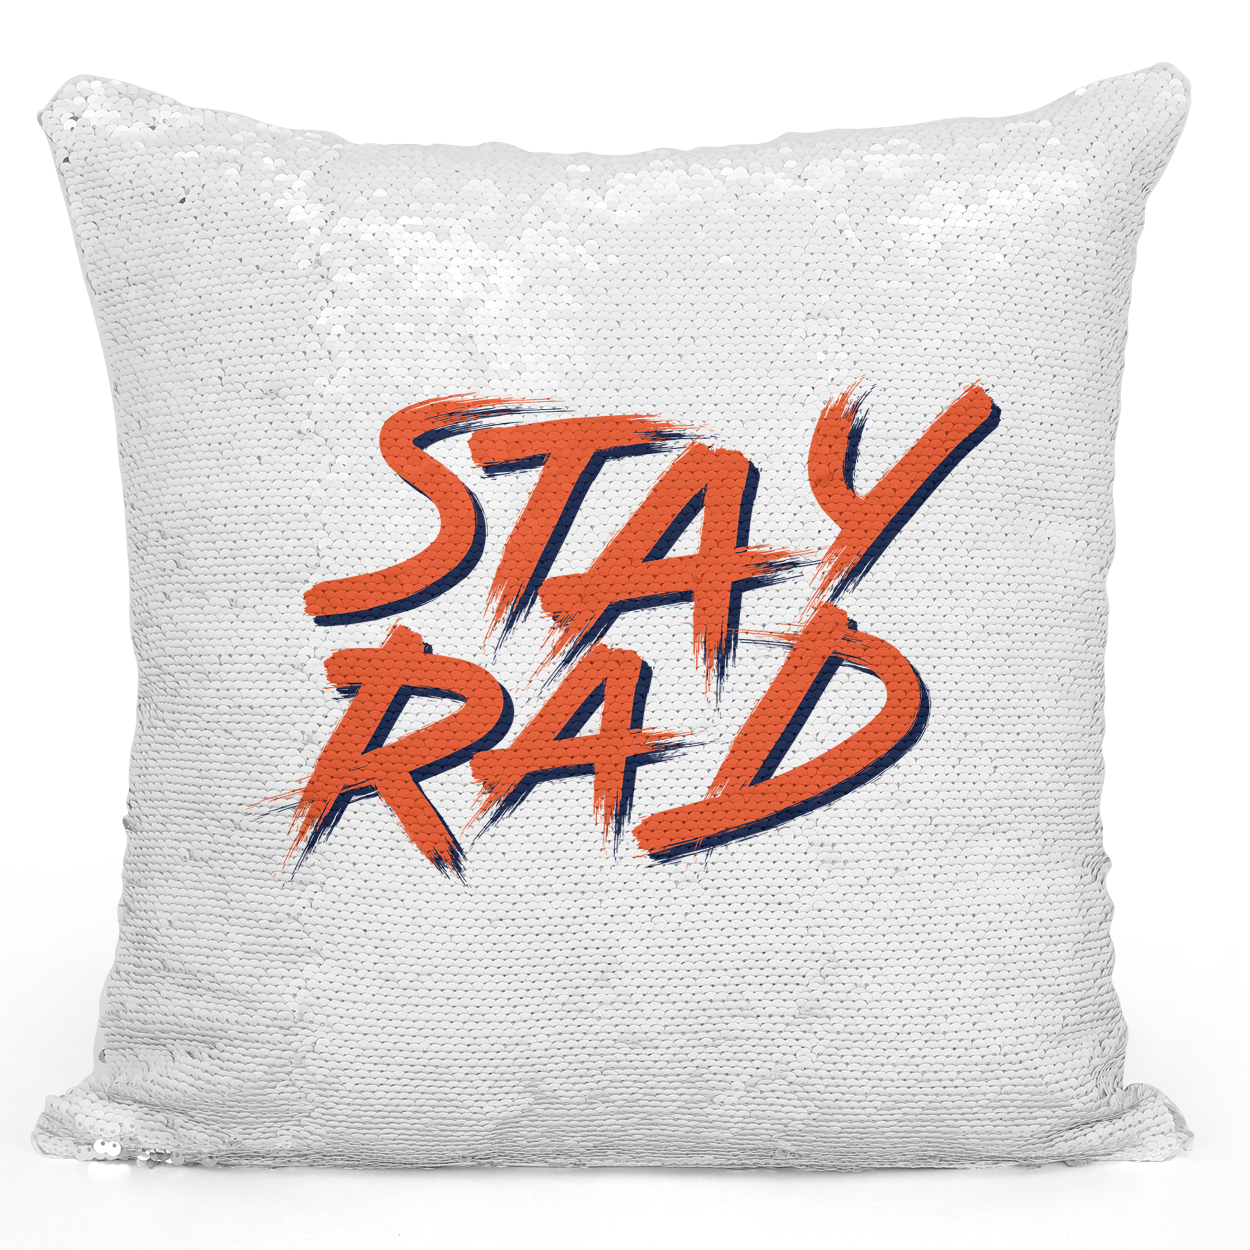 16x16 inch Sequin Throw Pillow Magic Flip Pillow Stay Rad Pillow With Words Loud Universe